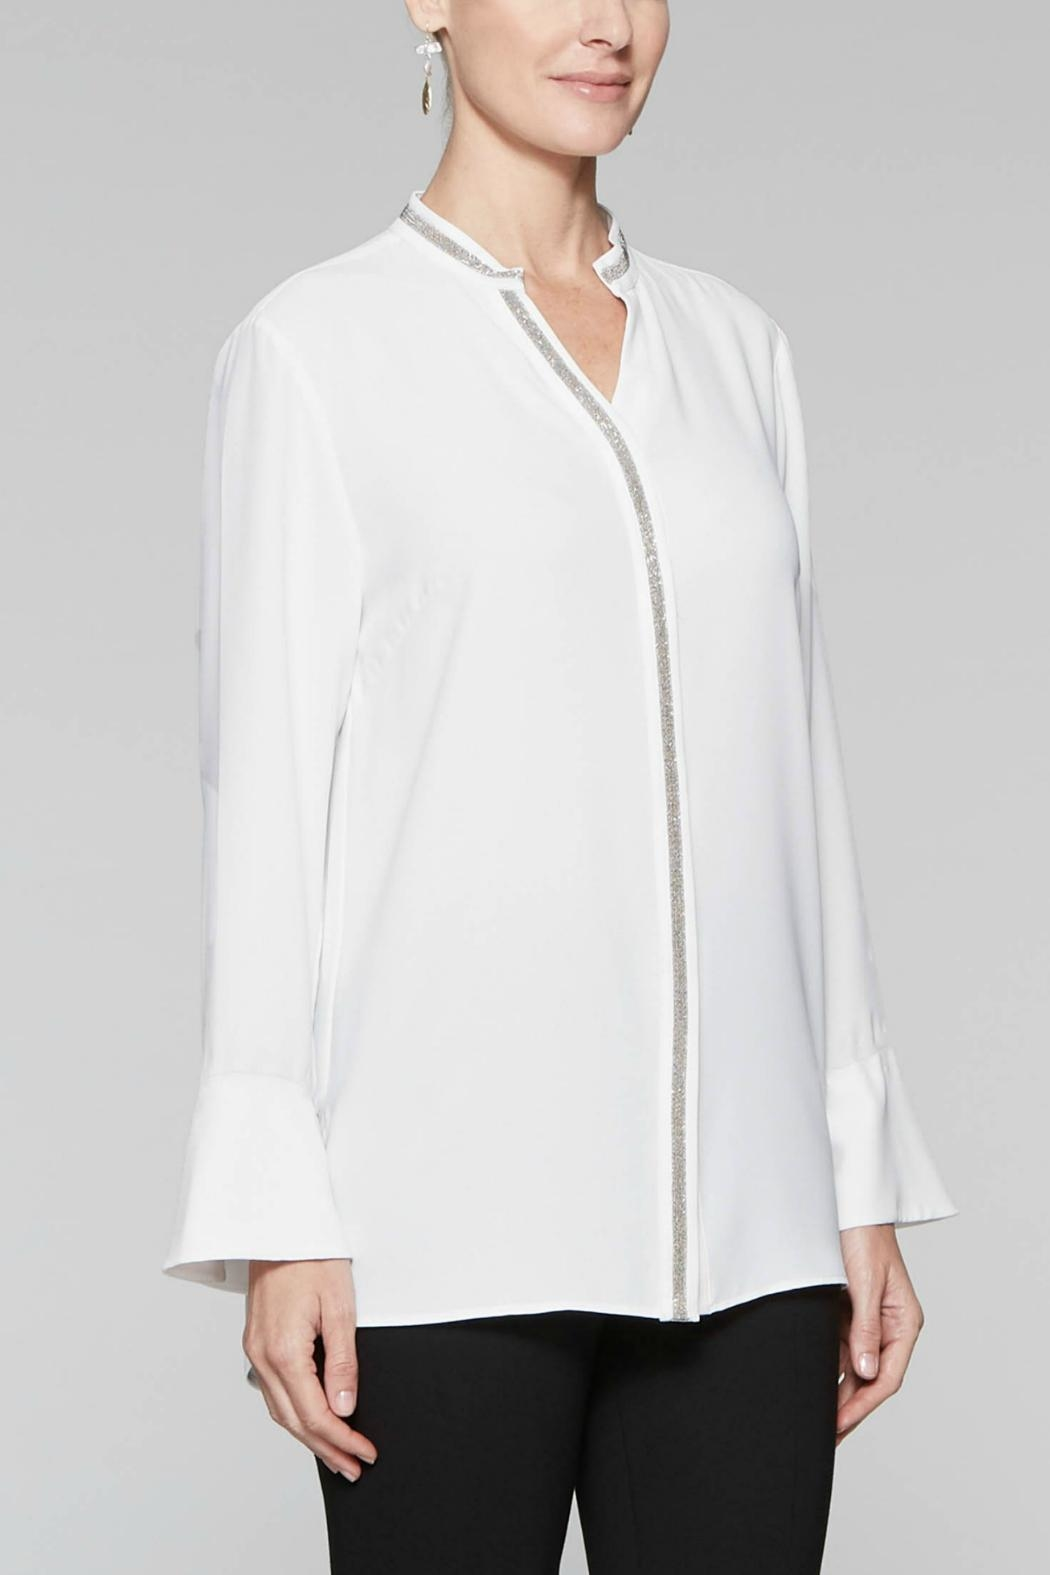 Misook Sparkle Trim Blouse - Side Cropped Image